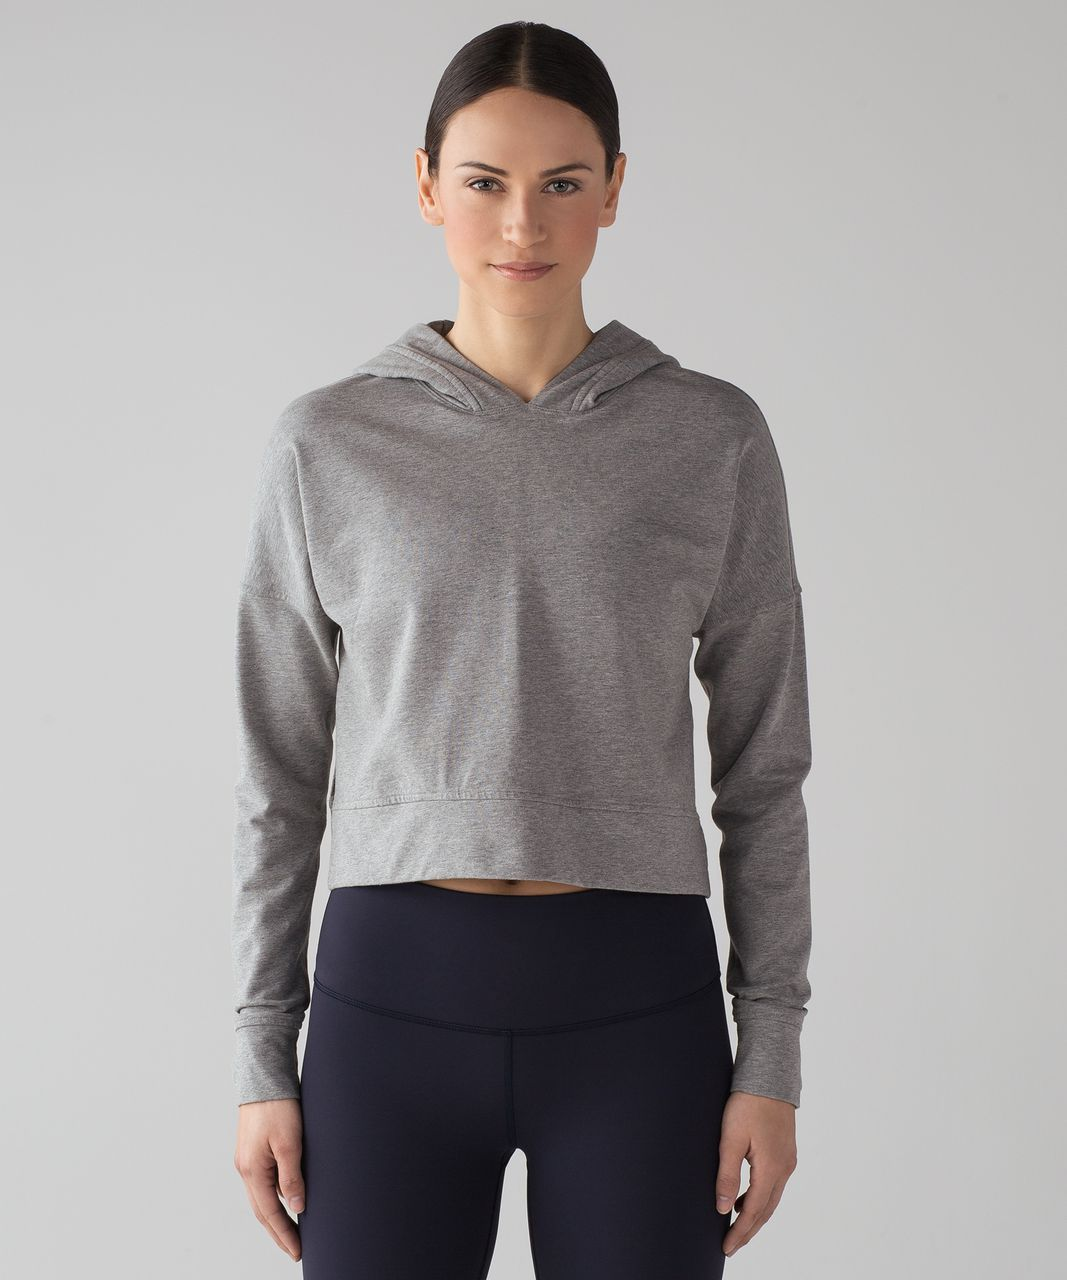 Pullover Hoodie Cut Lululemon Cut Above Pullover Heathered Medium Grey